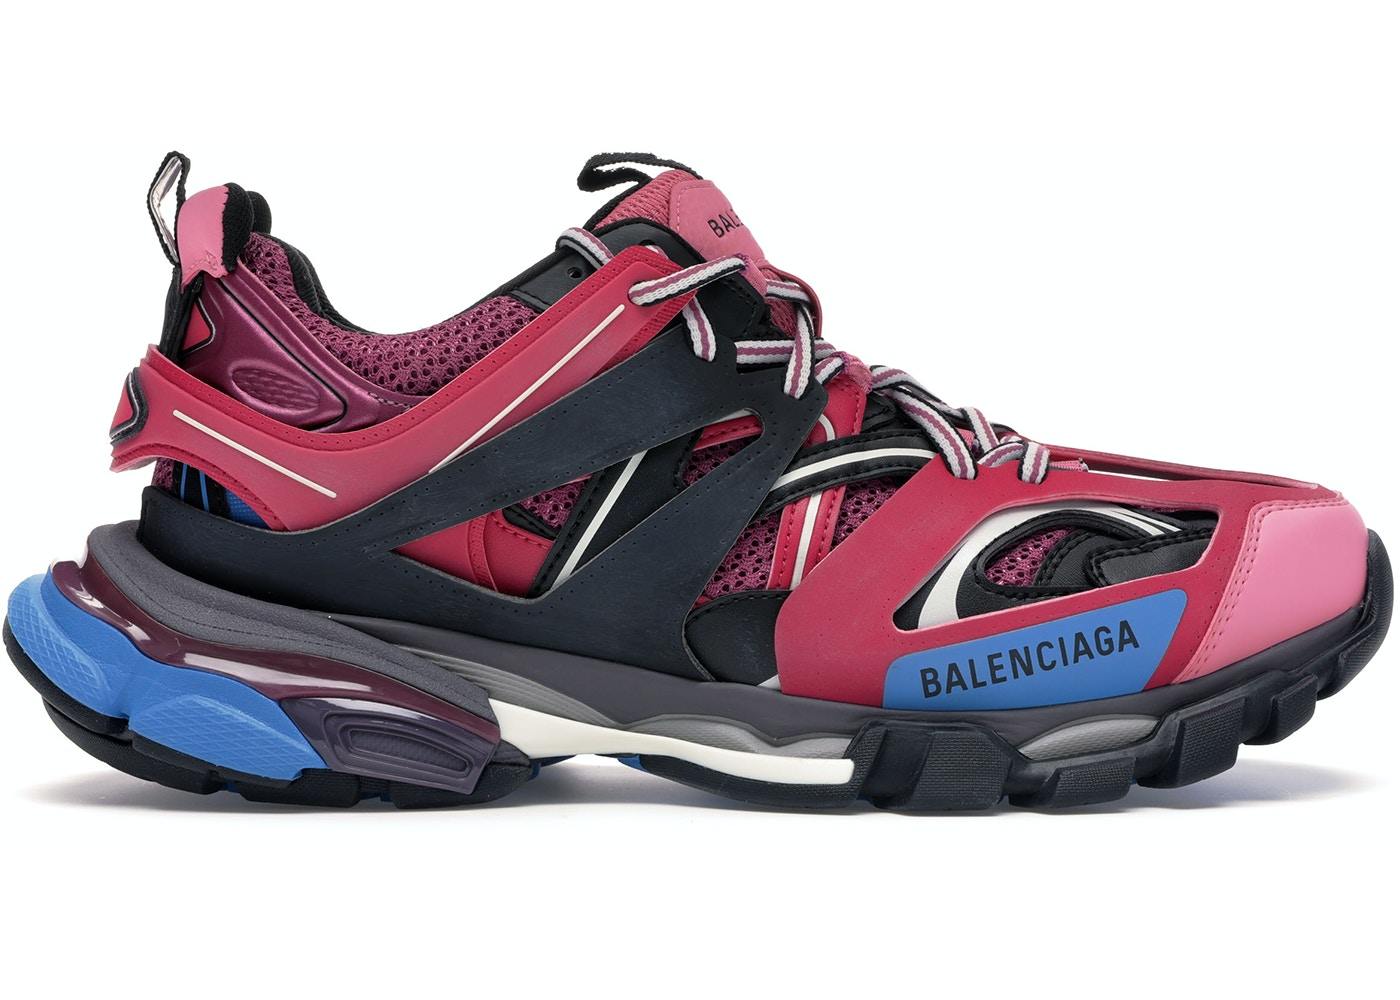 Ranking The Top 10 Balenciaga Sneakers of All-Time